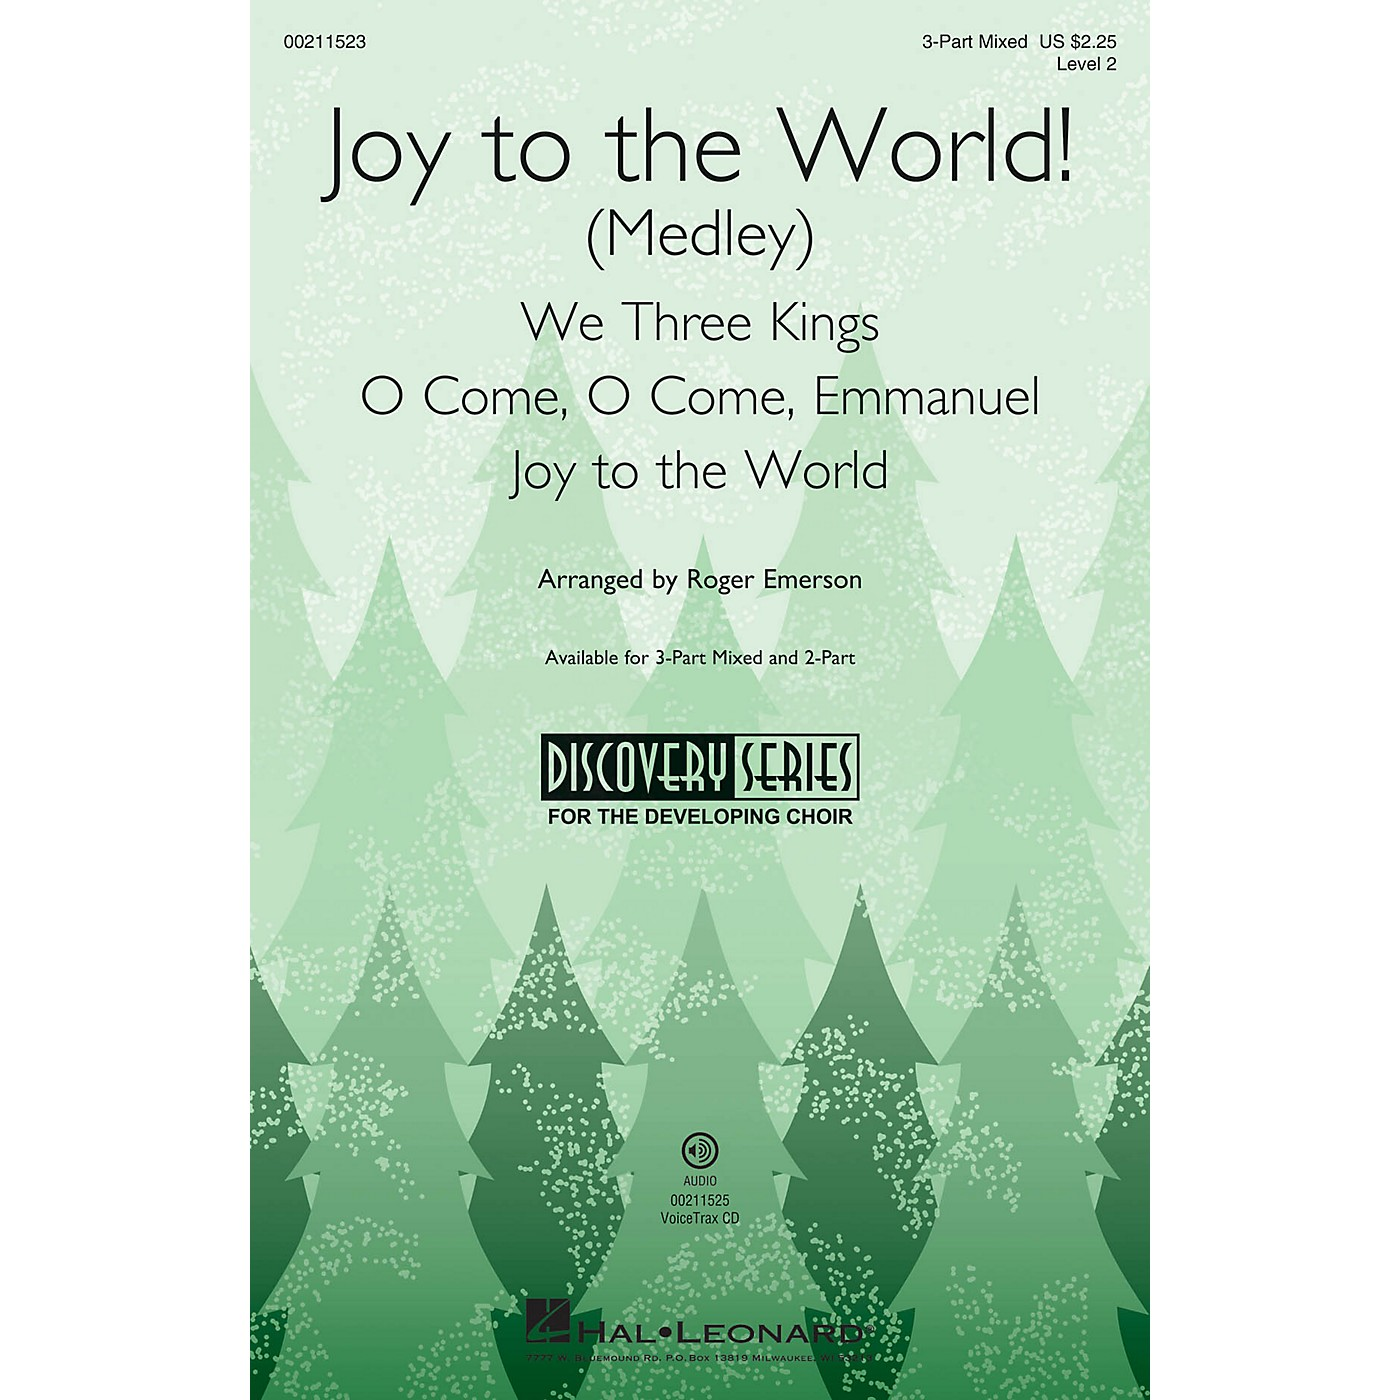 Hal Leonard Joy to the World! (Medley) Discovery Level 2 3-Part Mixed arranged by Roger Emerson thumbnail